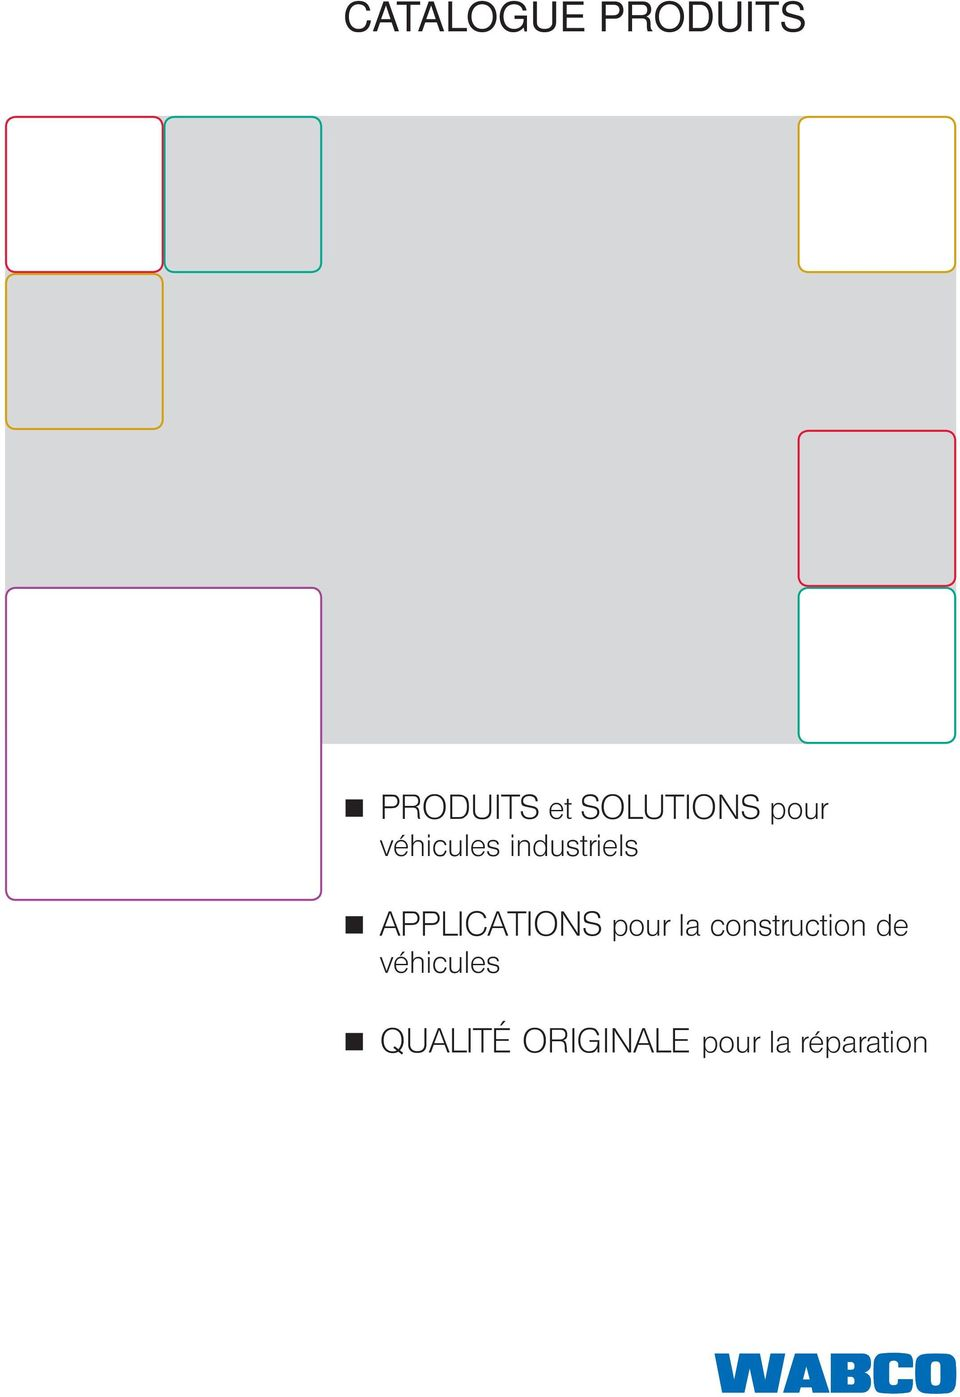 APPLICATIONS pour la construction de